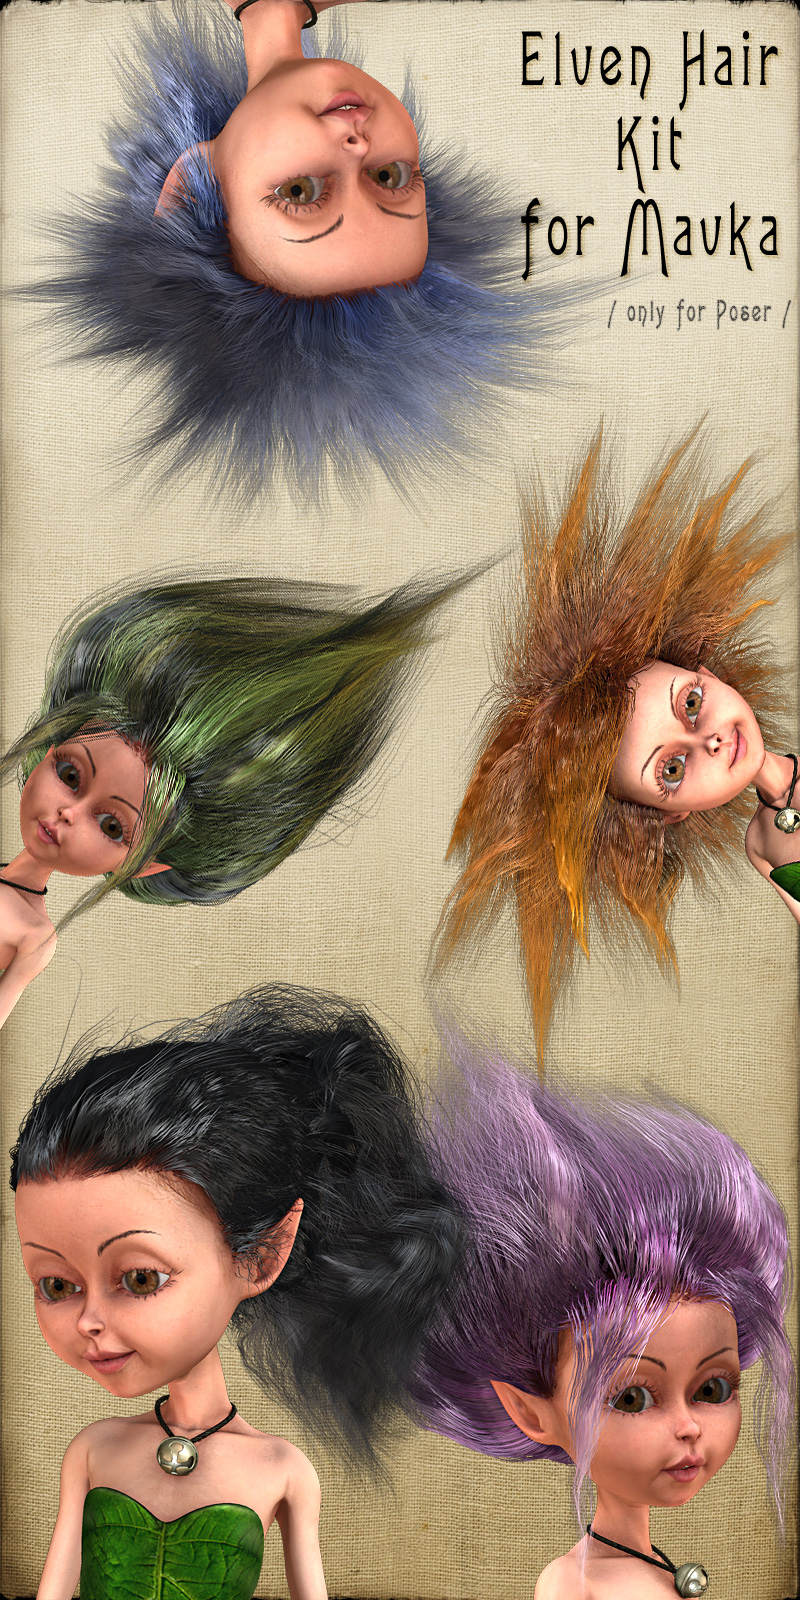 Elven Hair Kit for Mavka